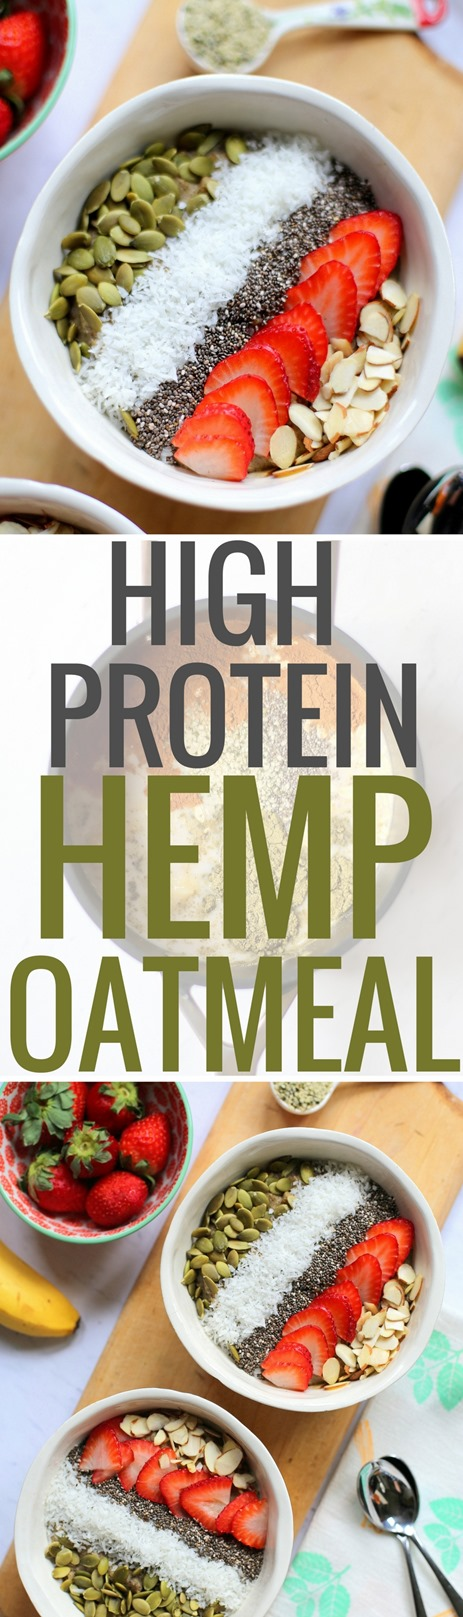 High Protein Hemp Oatmeal